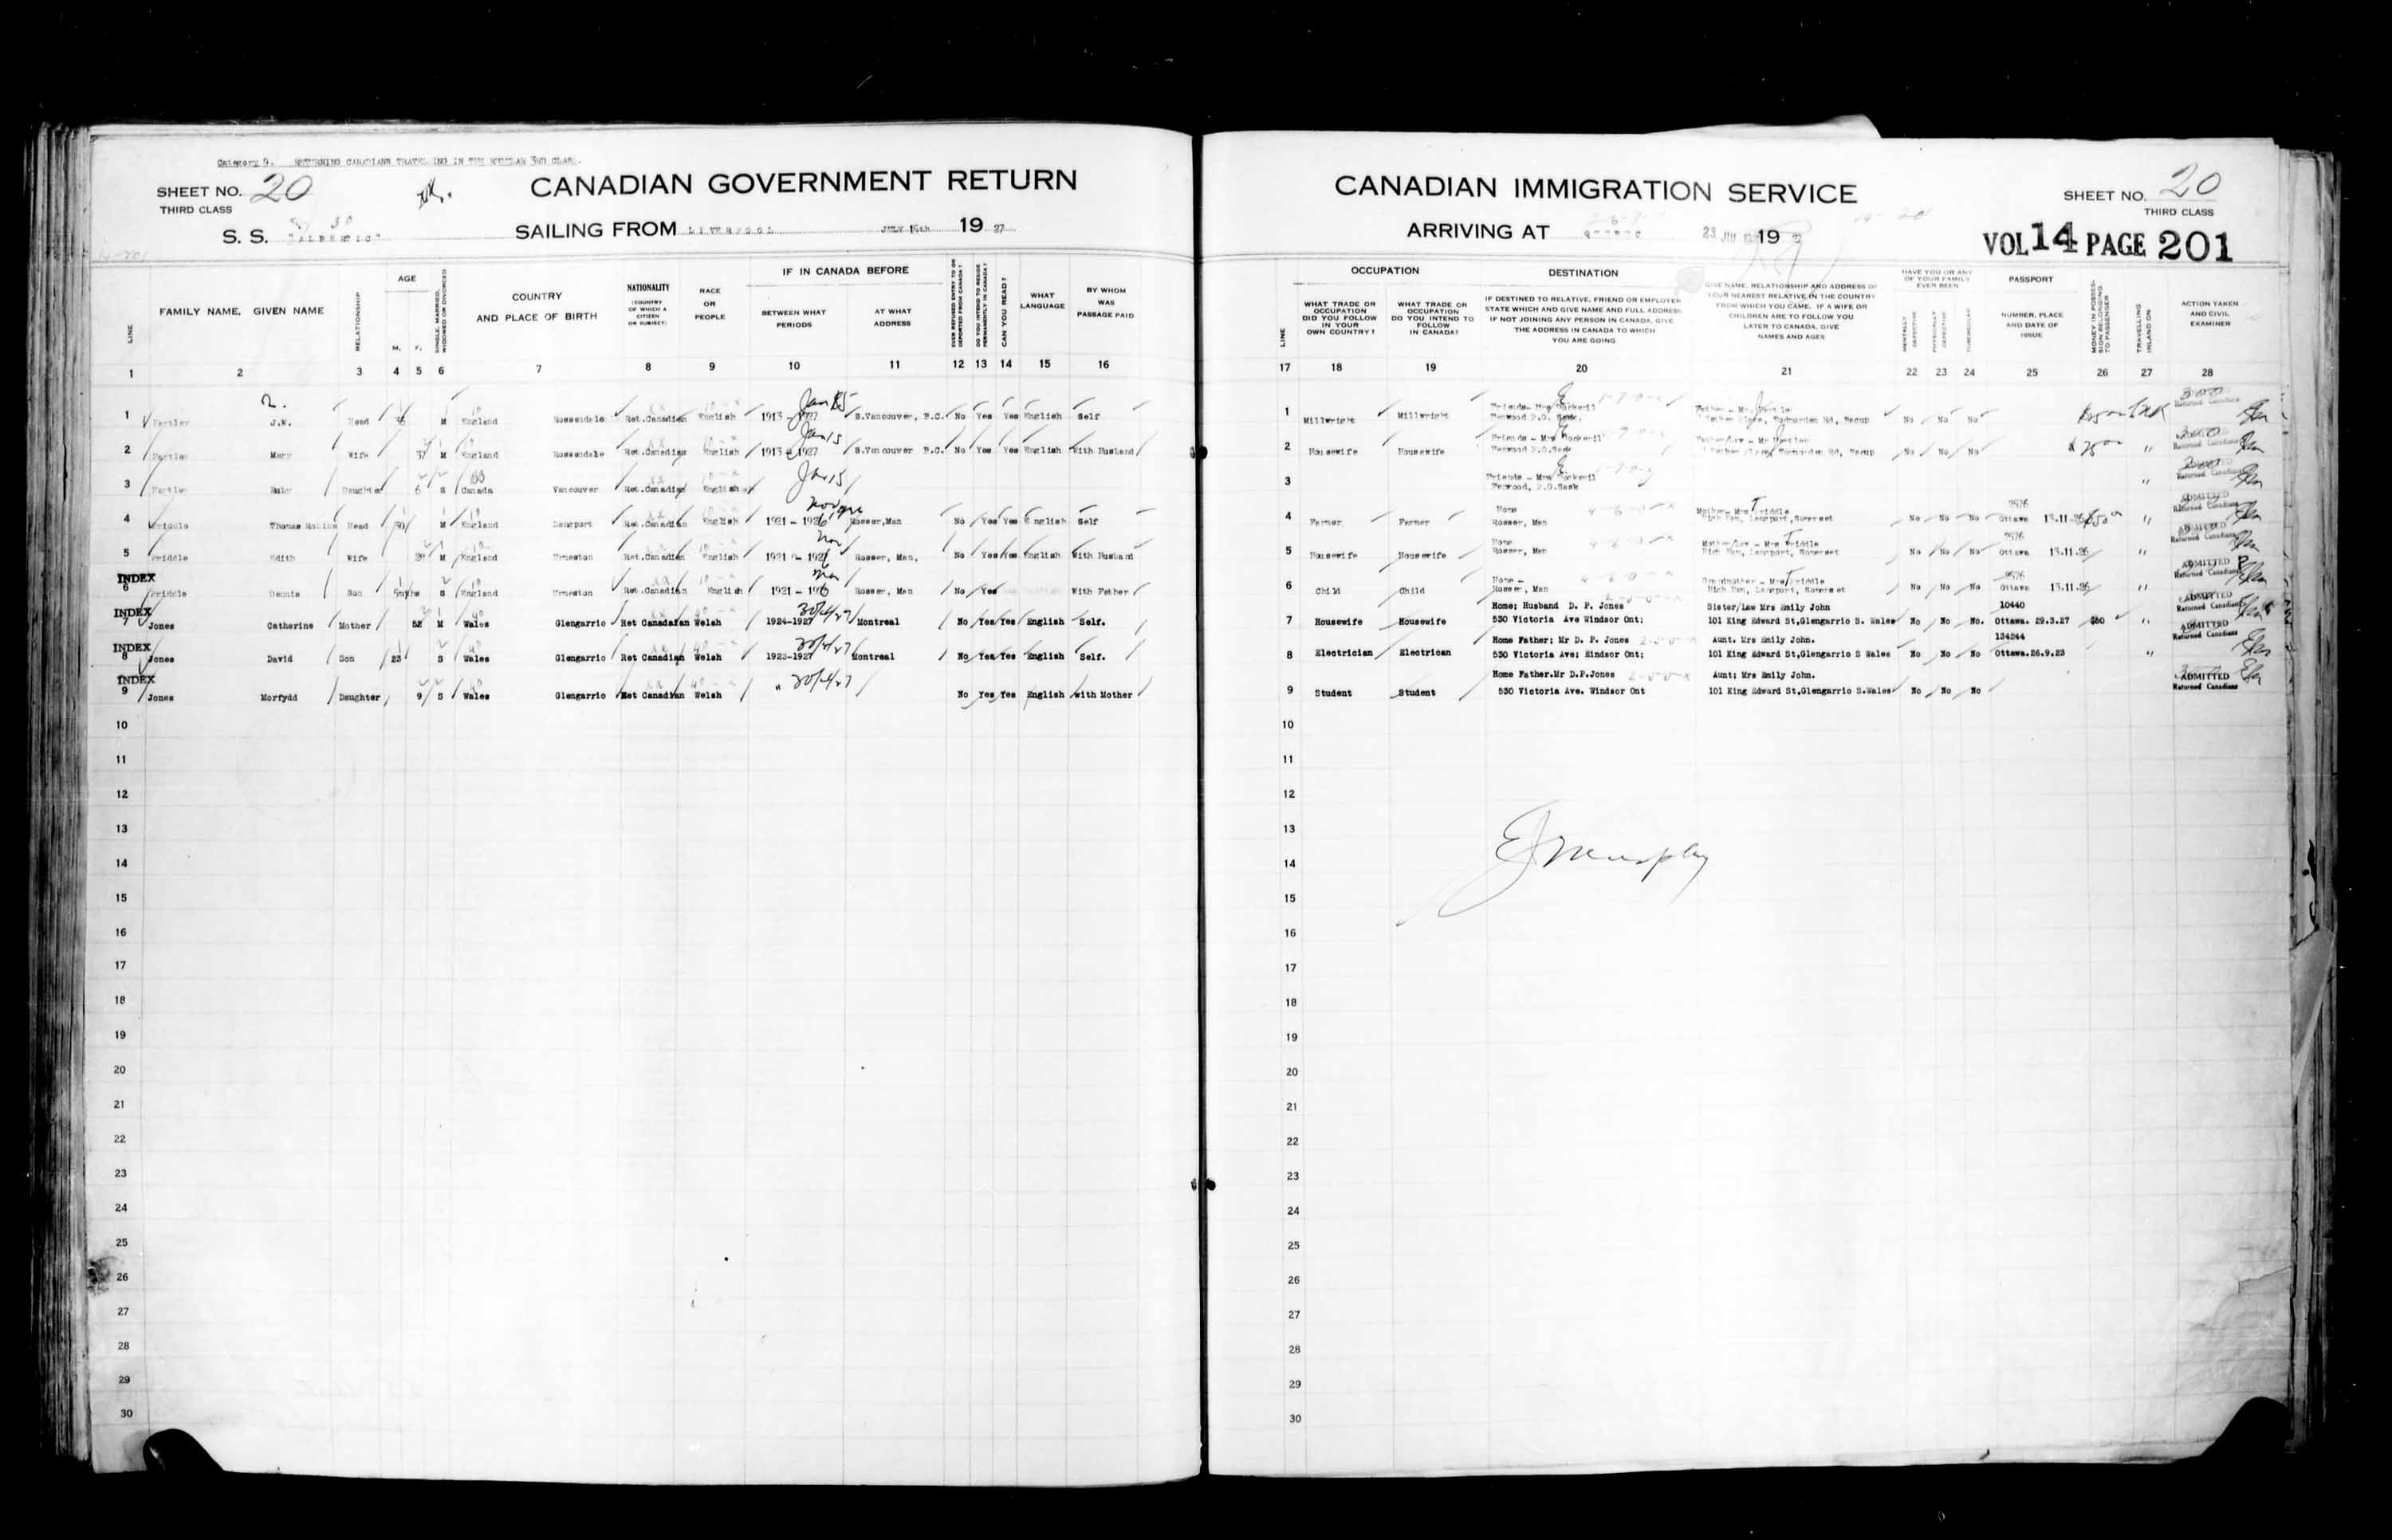 Title: Passenger Lists: Quebec City (1925-1935) - Mikan Number: 134839 - Microform: t-14735